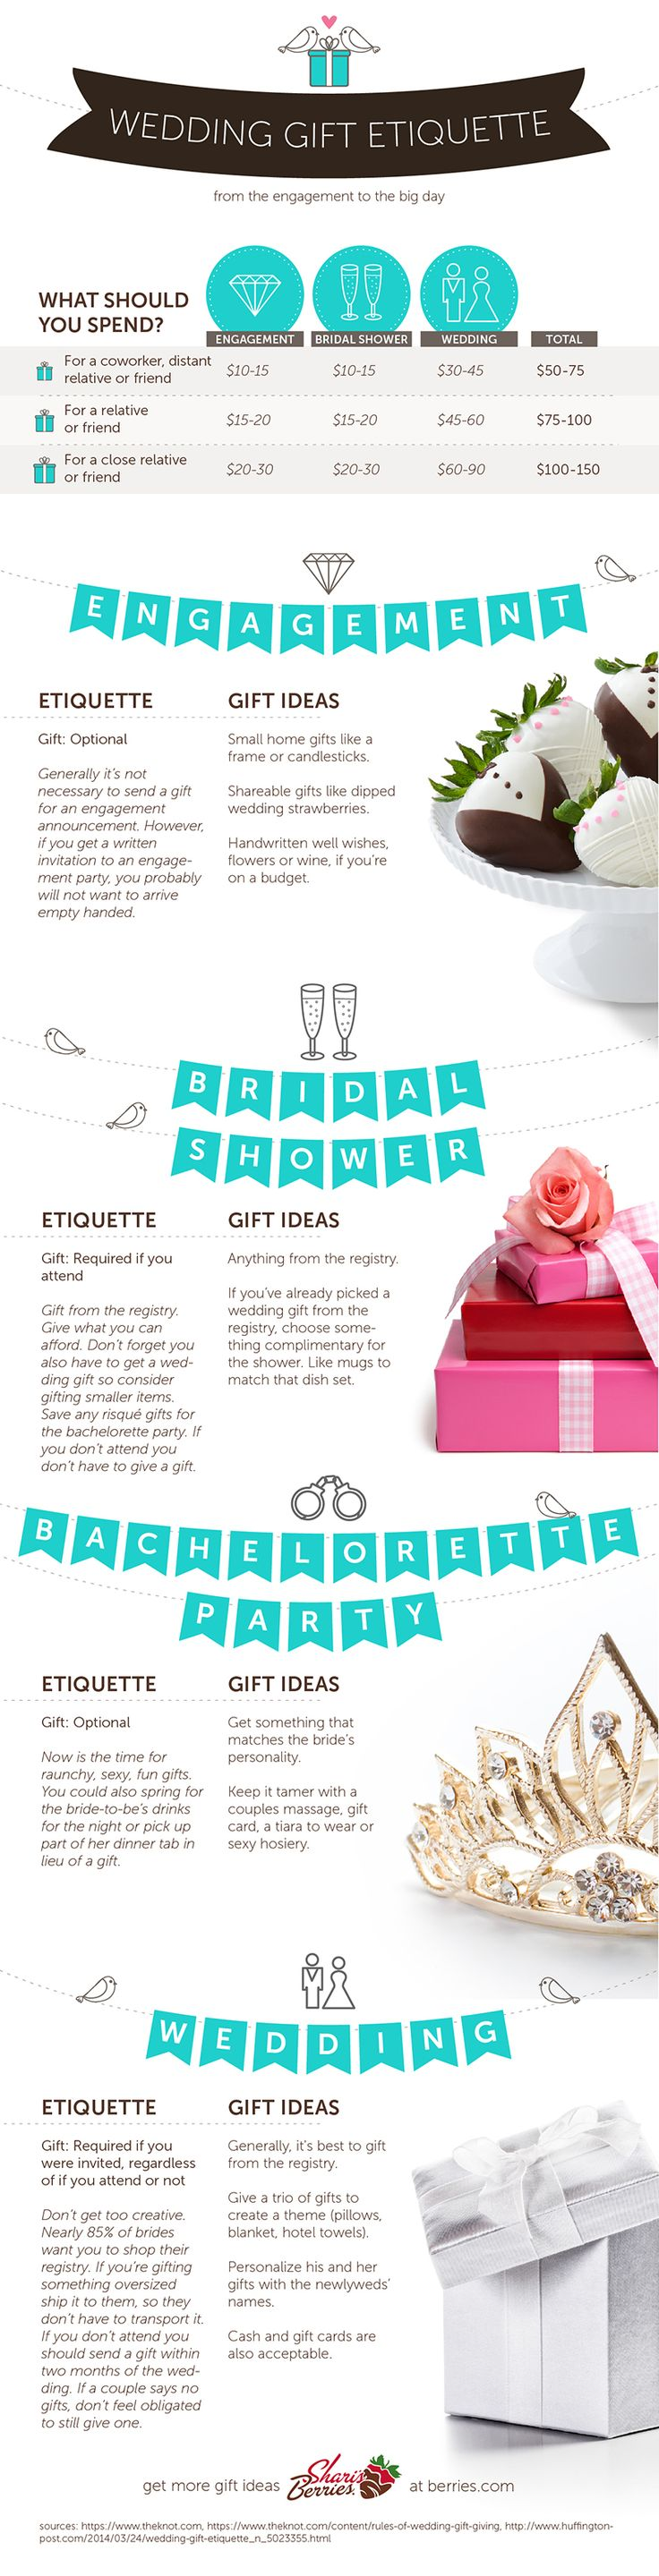 Wedding Gift Giving Etiquette For Bridesmaids : Wedding Gift Guide and Etiquette - Do I need a gift for the bridal ...